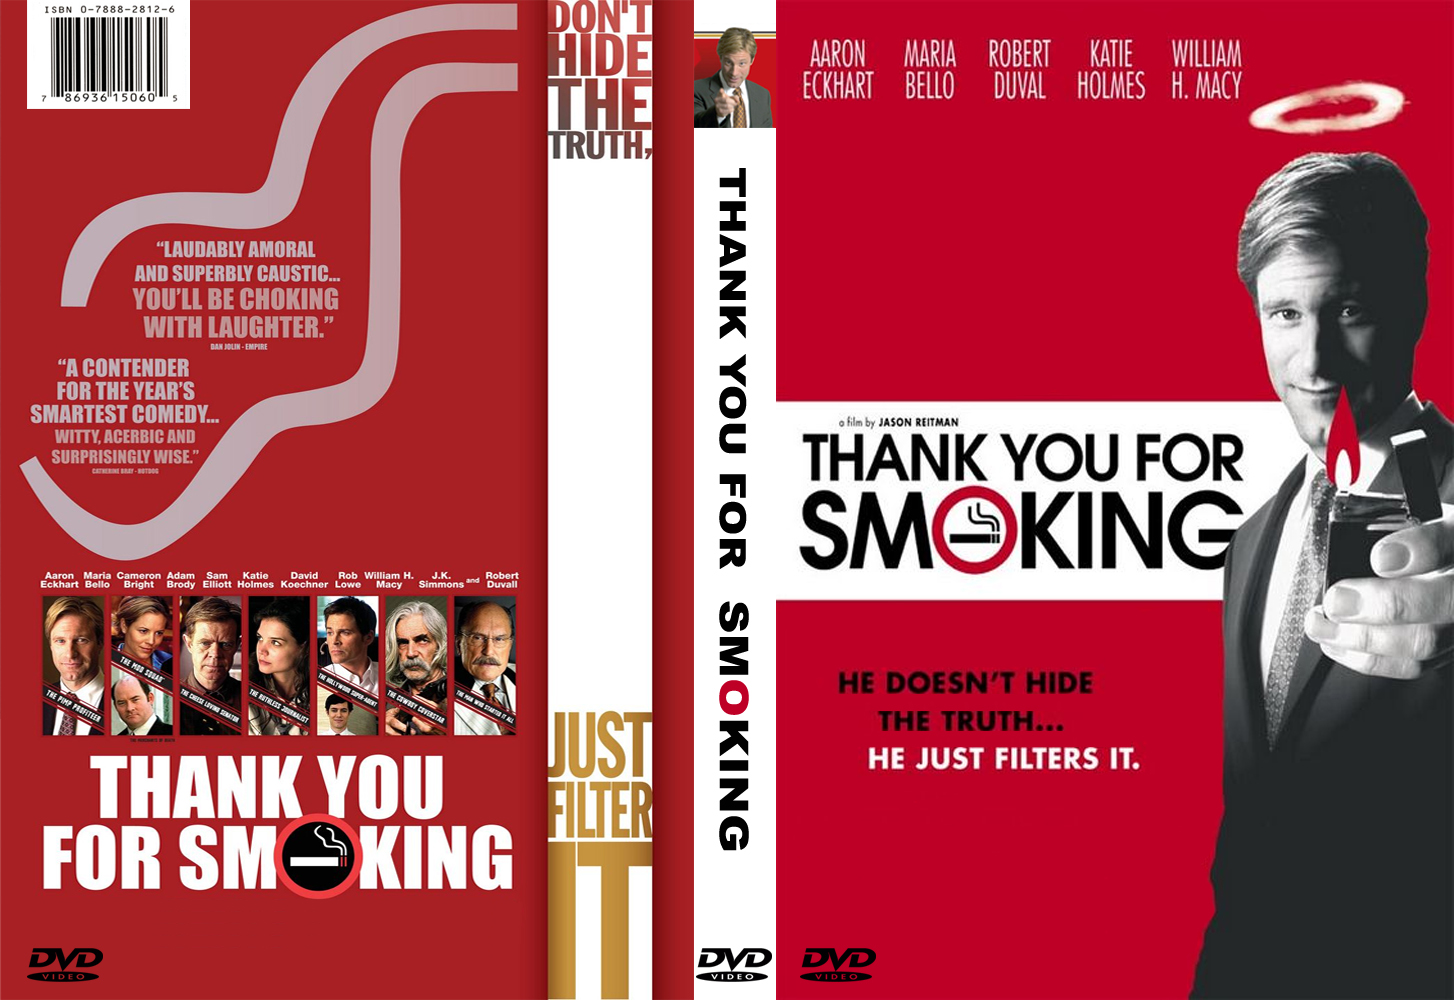 Thank You For Smoking Summary